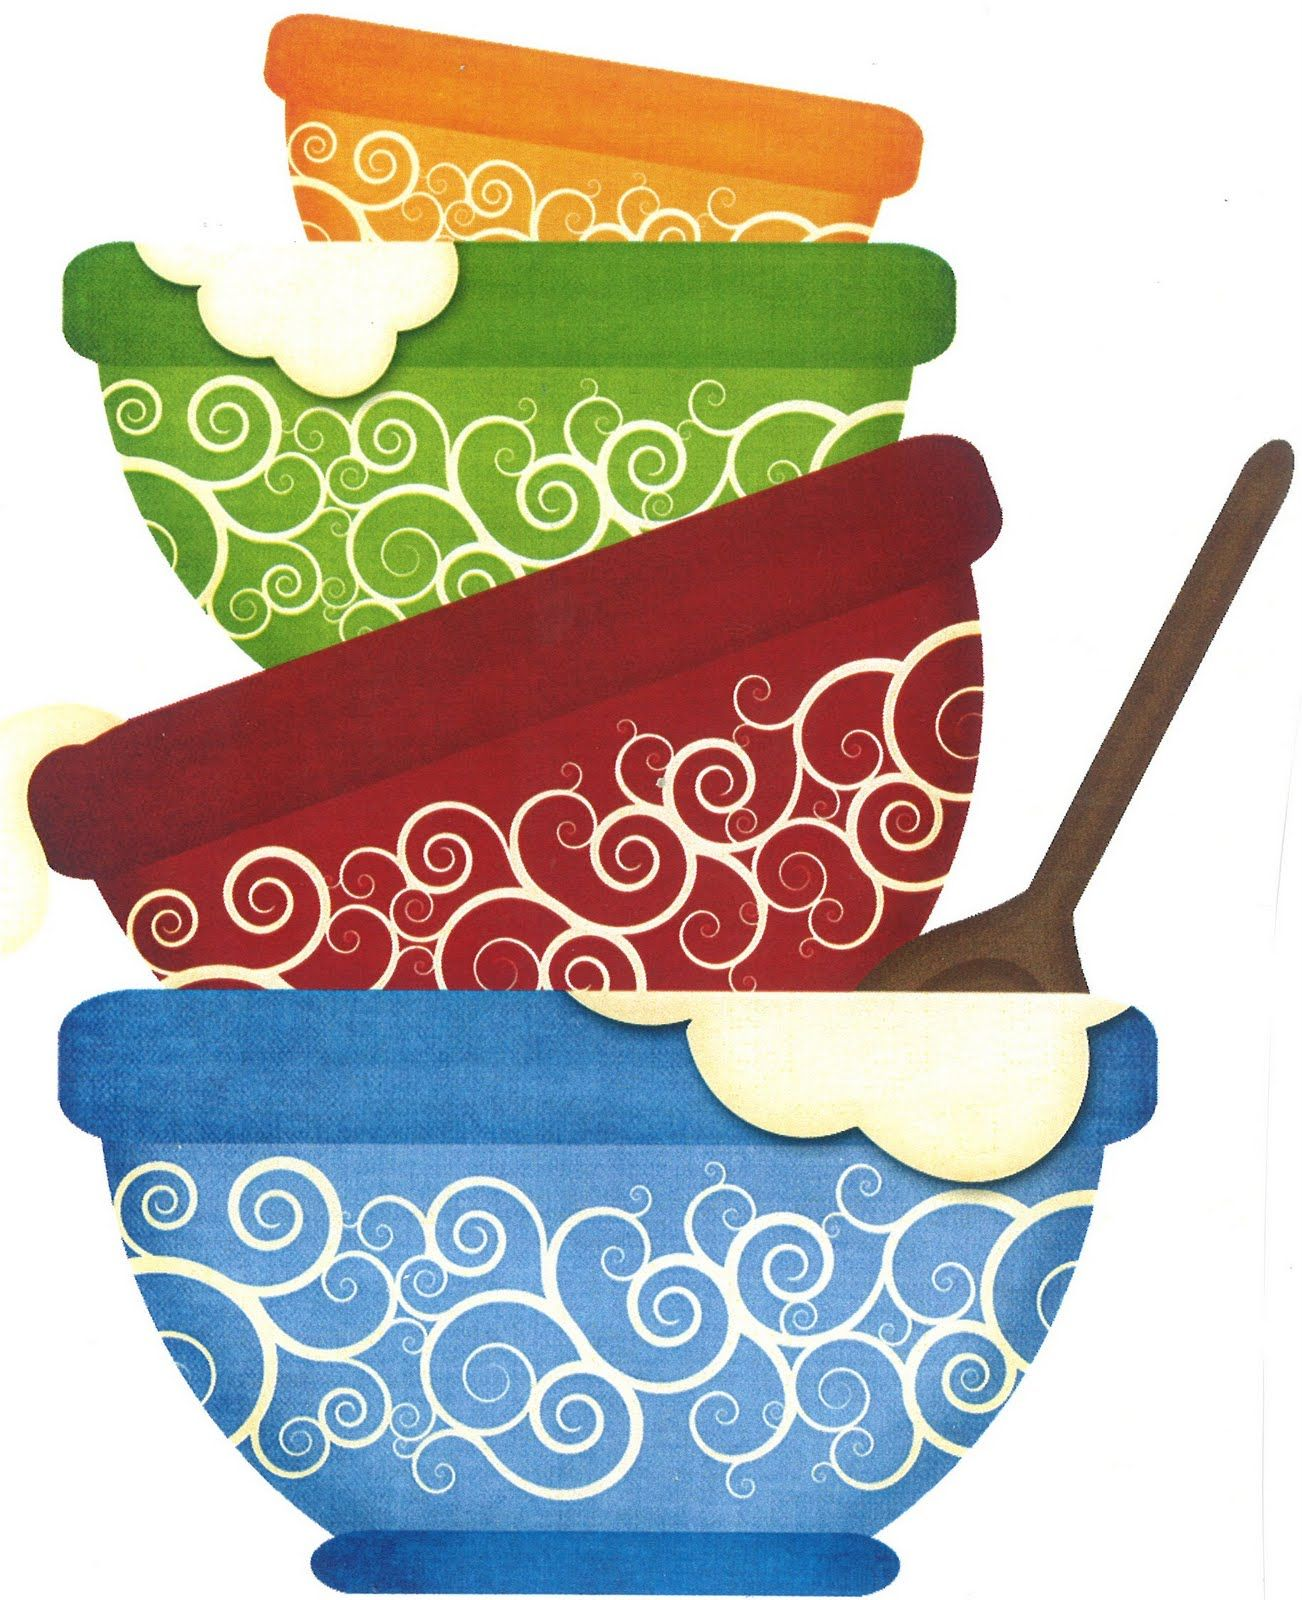 Baking clipart mixing bowl. Pin by lynn mcrea